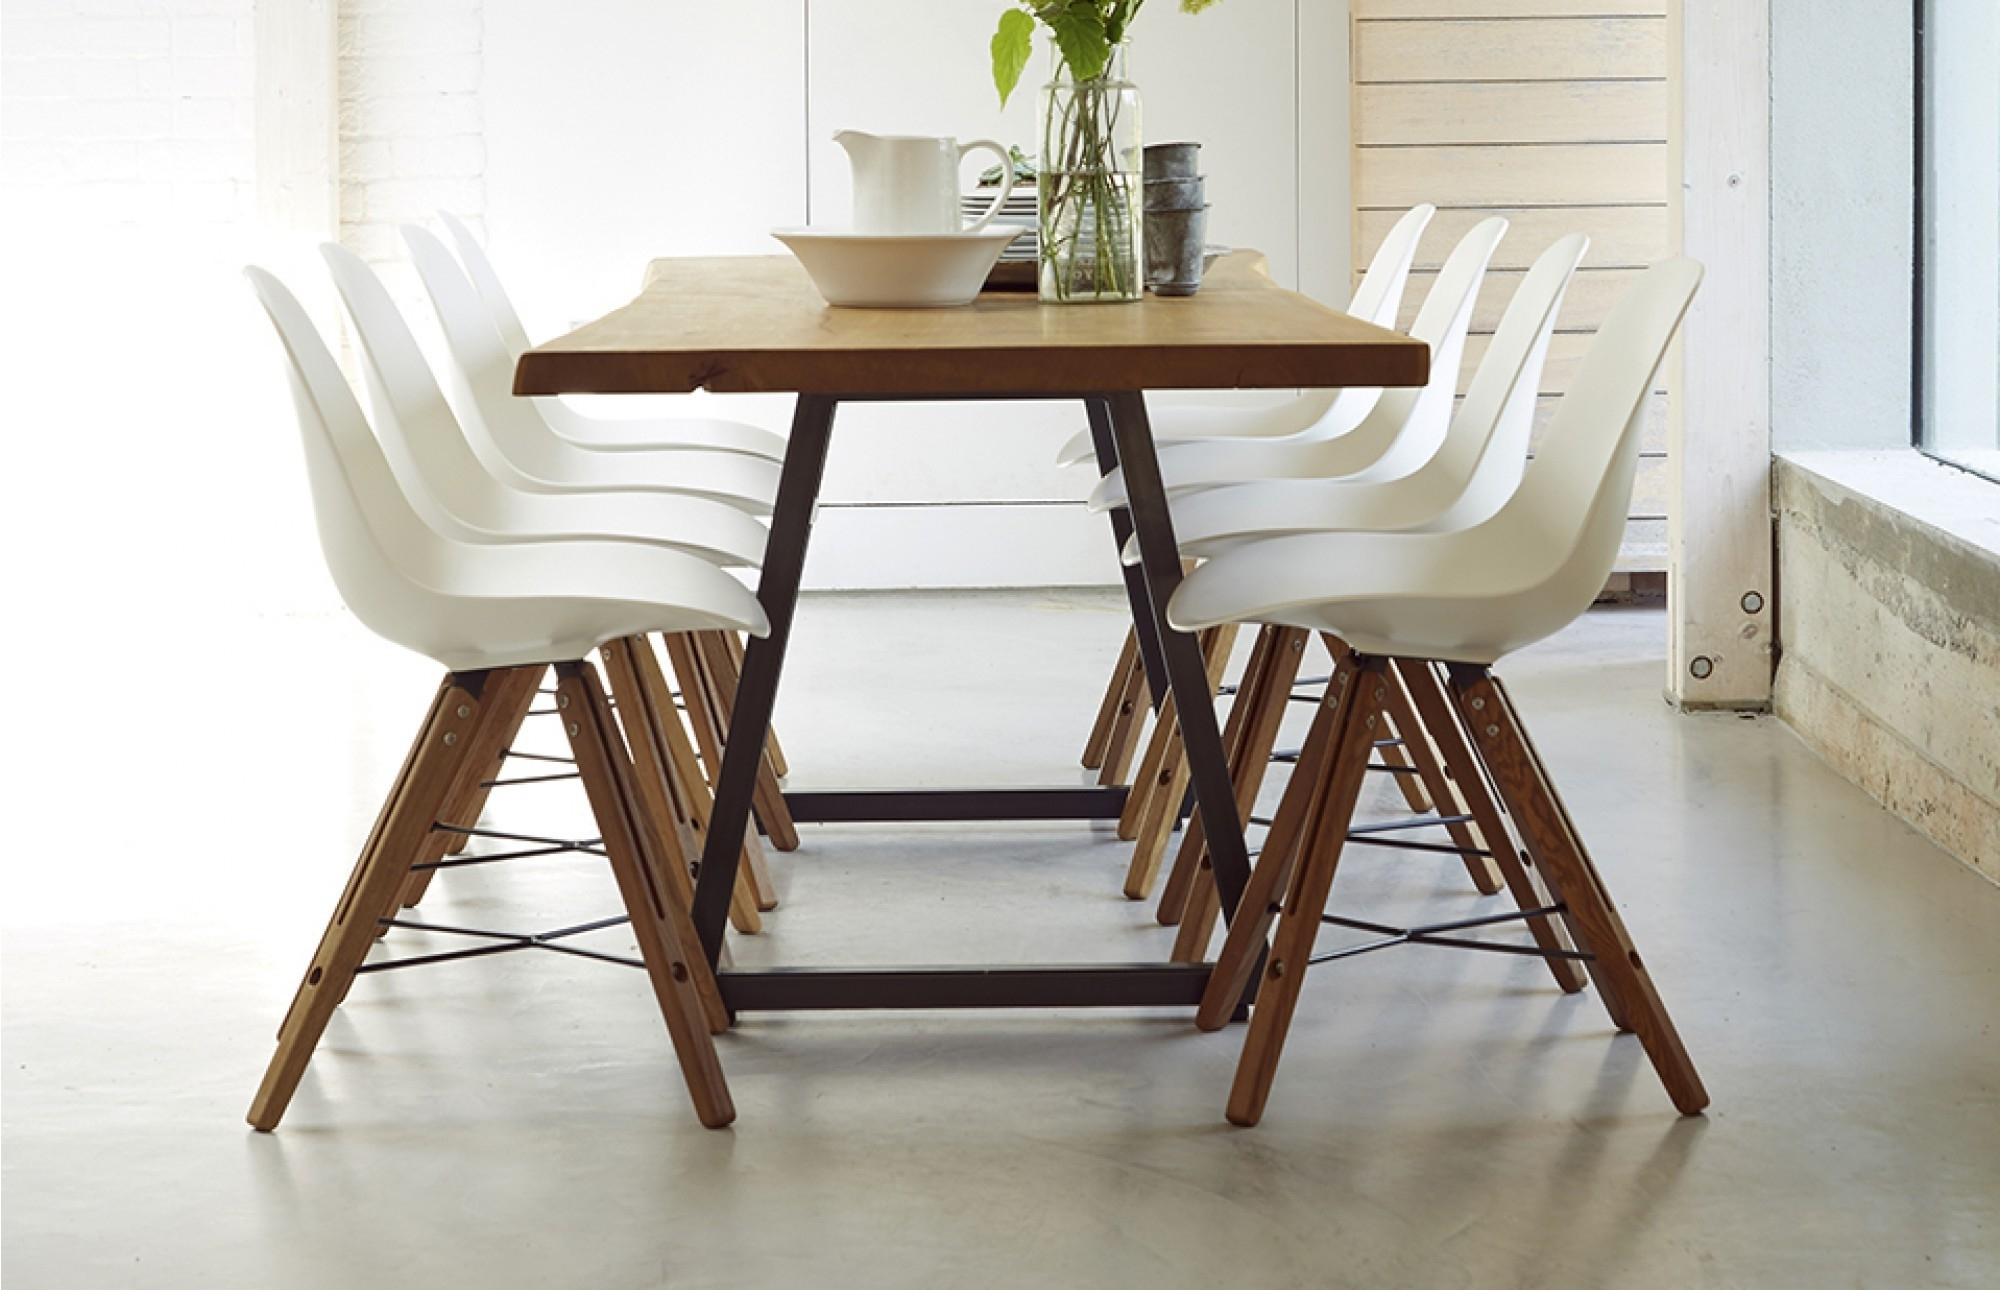 Most Popular Oak Extending Dining Table And 8 Chairs Fresh Dining Room Furniture Pertaining To Extending Dining Tables And 8 Chairs (View 19 of 25)